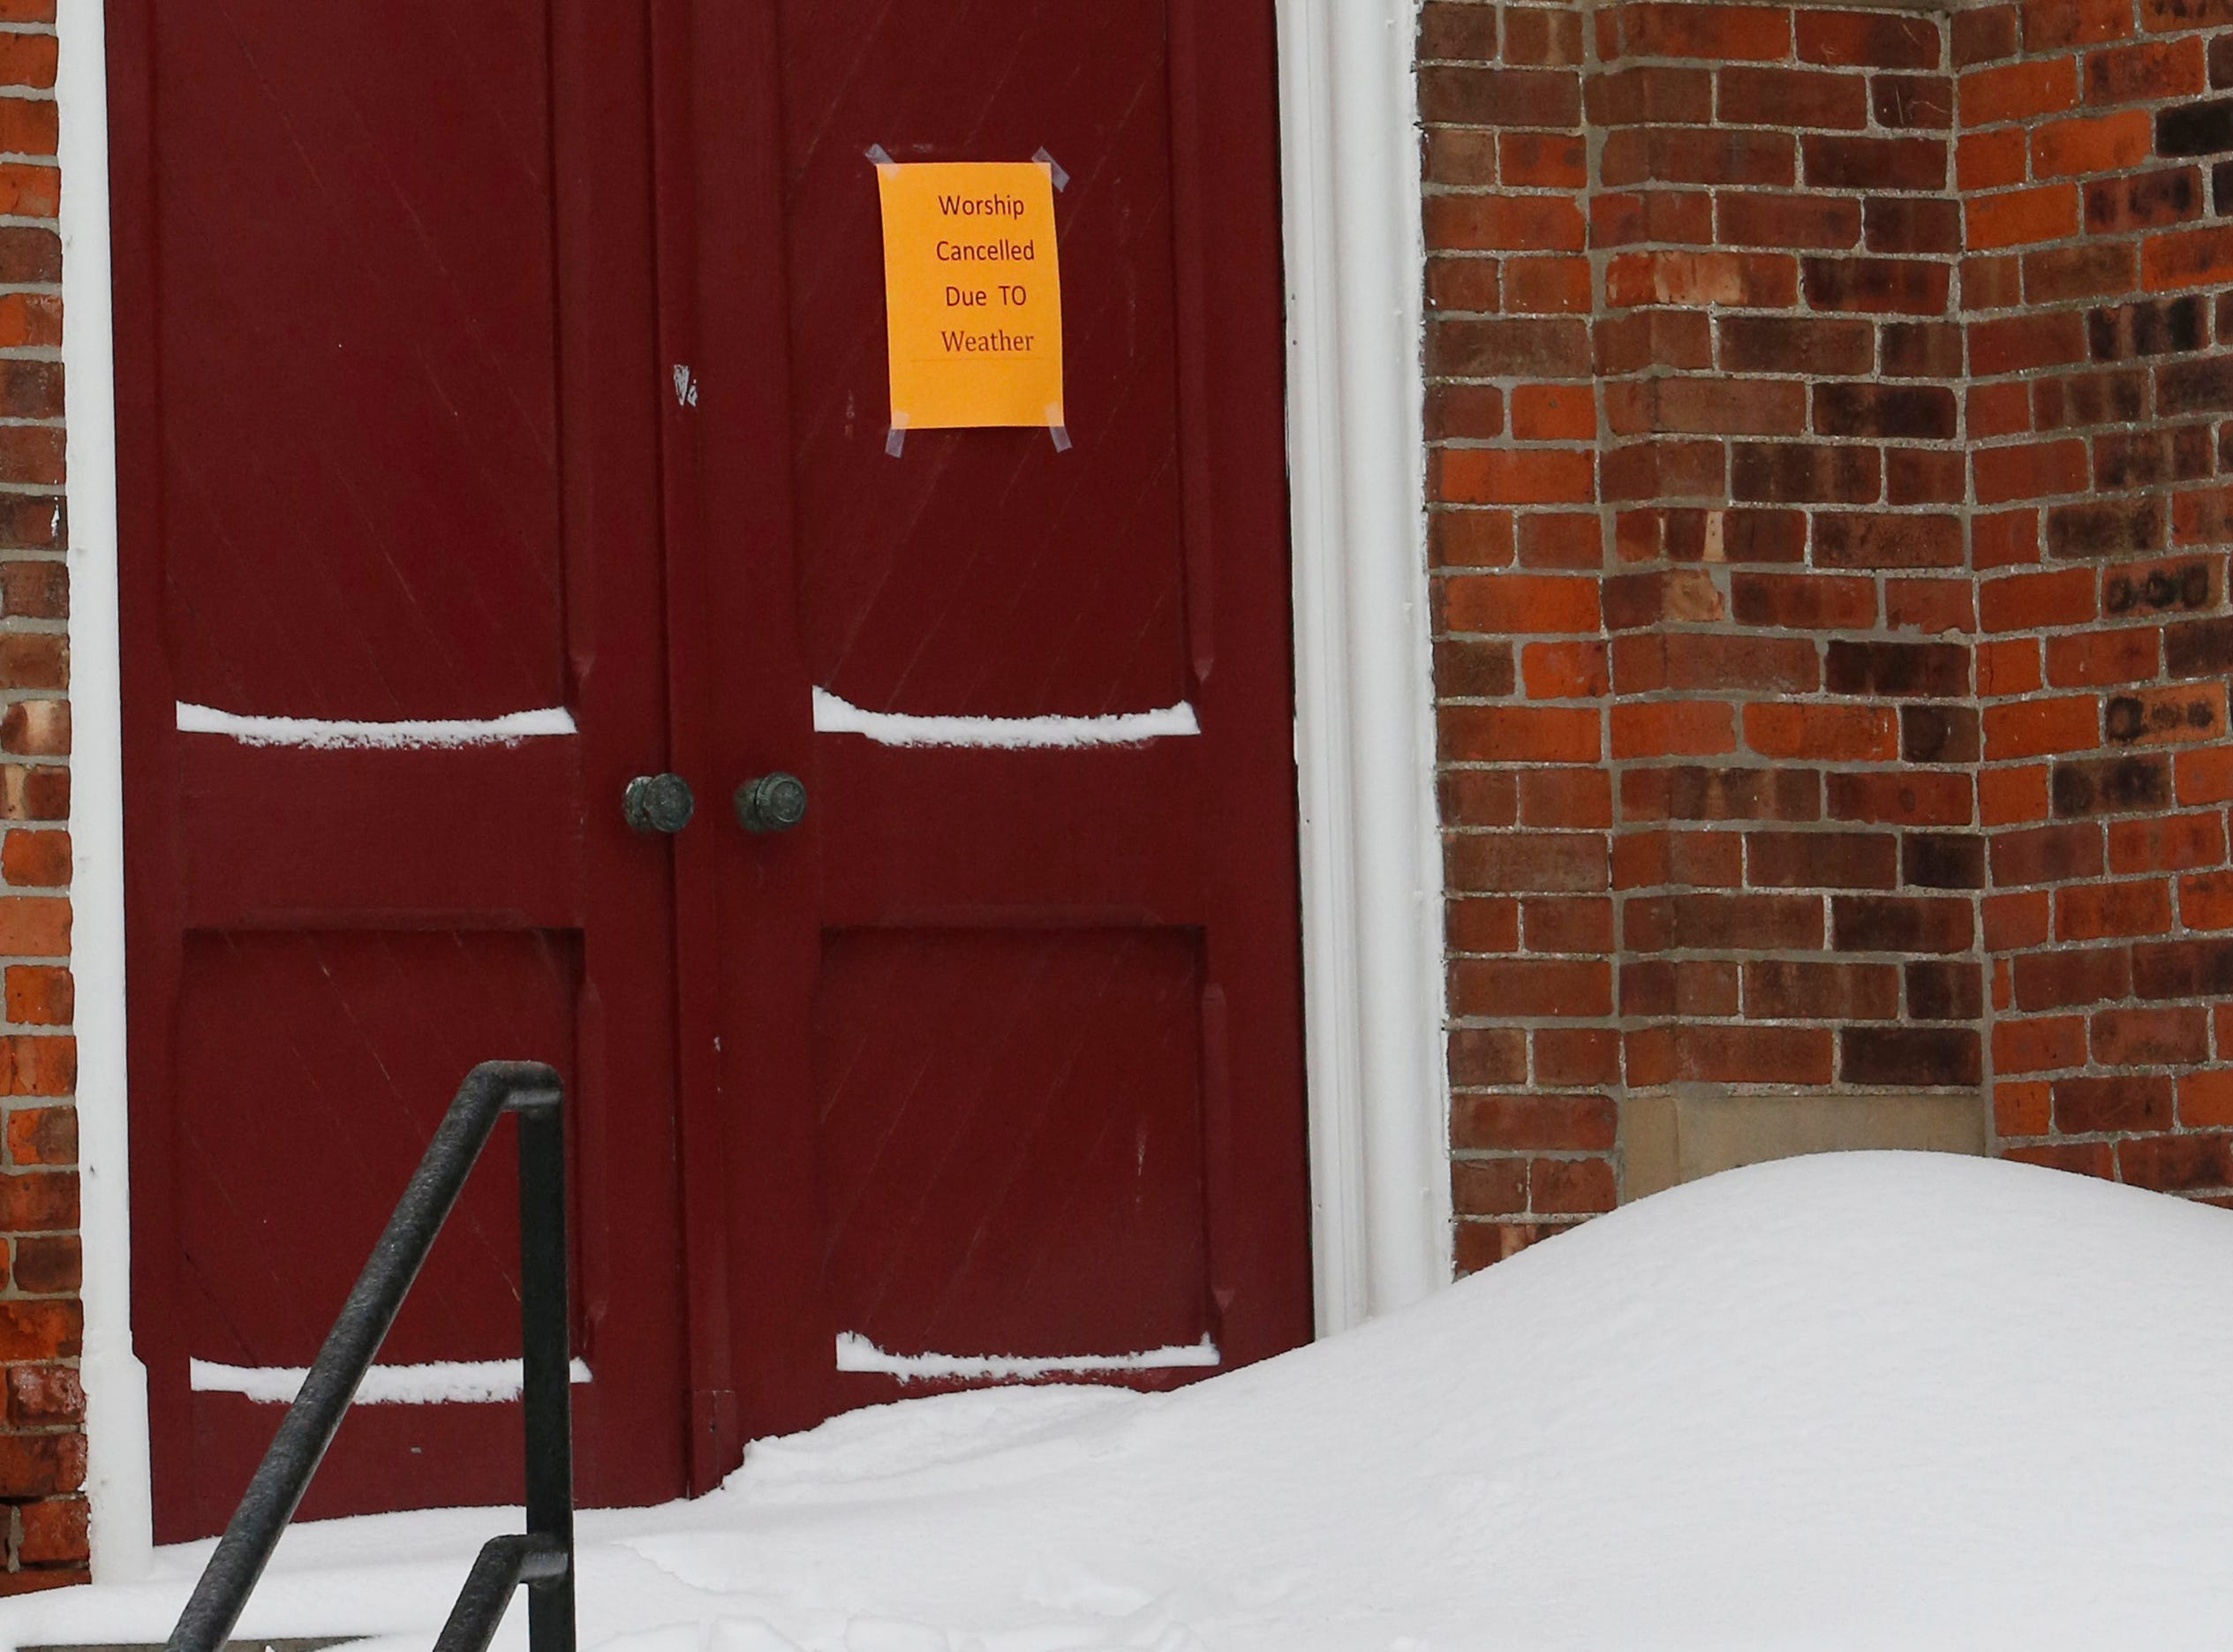 A sign posted on the door of the First Presbyterian Church in the Village of Wappingers Falls indicates that worship is cancelled due to the severe weather on January 20, 2019.